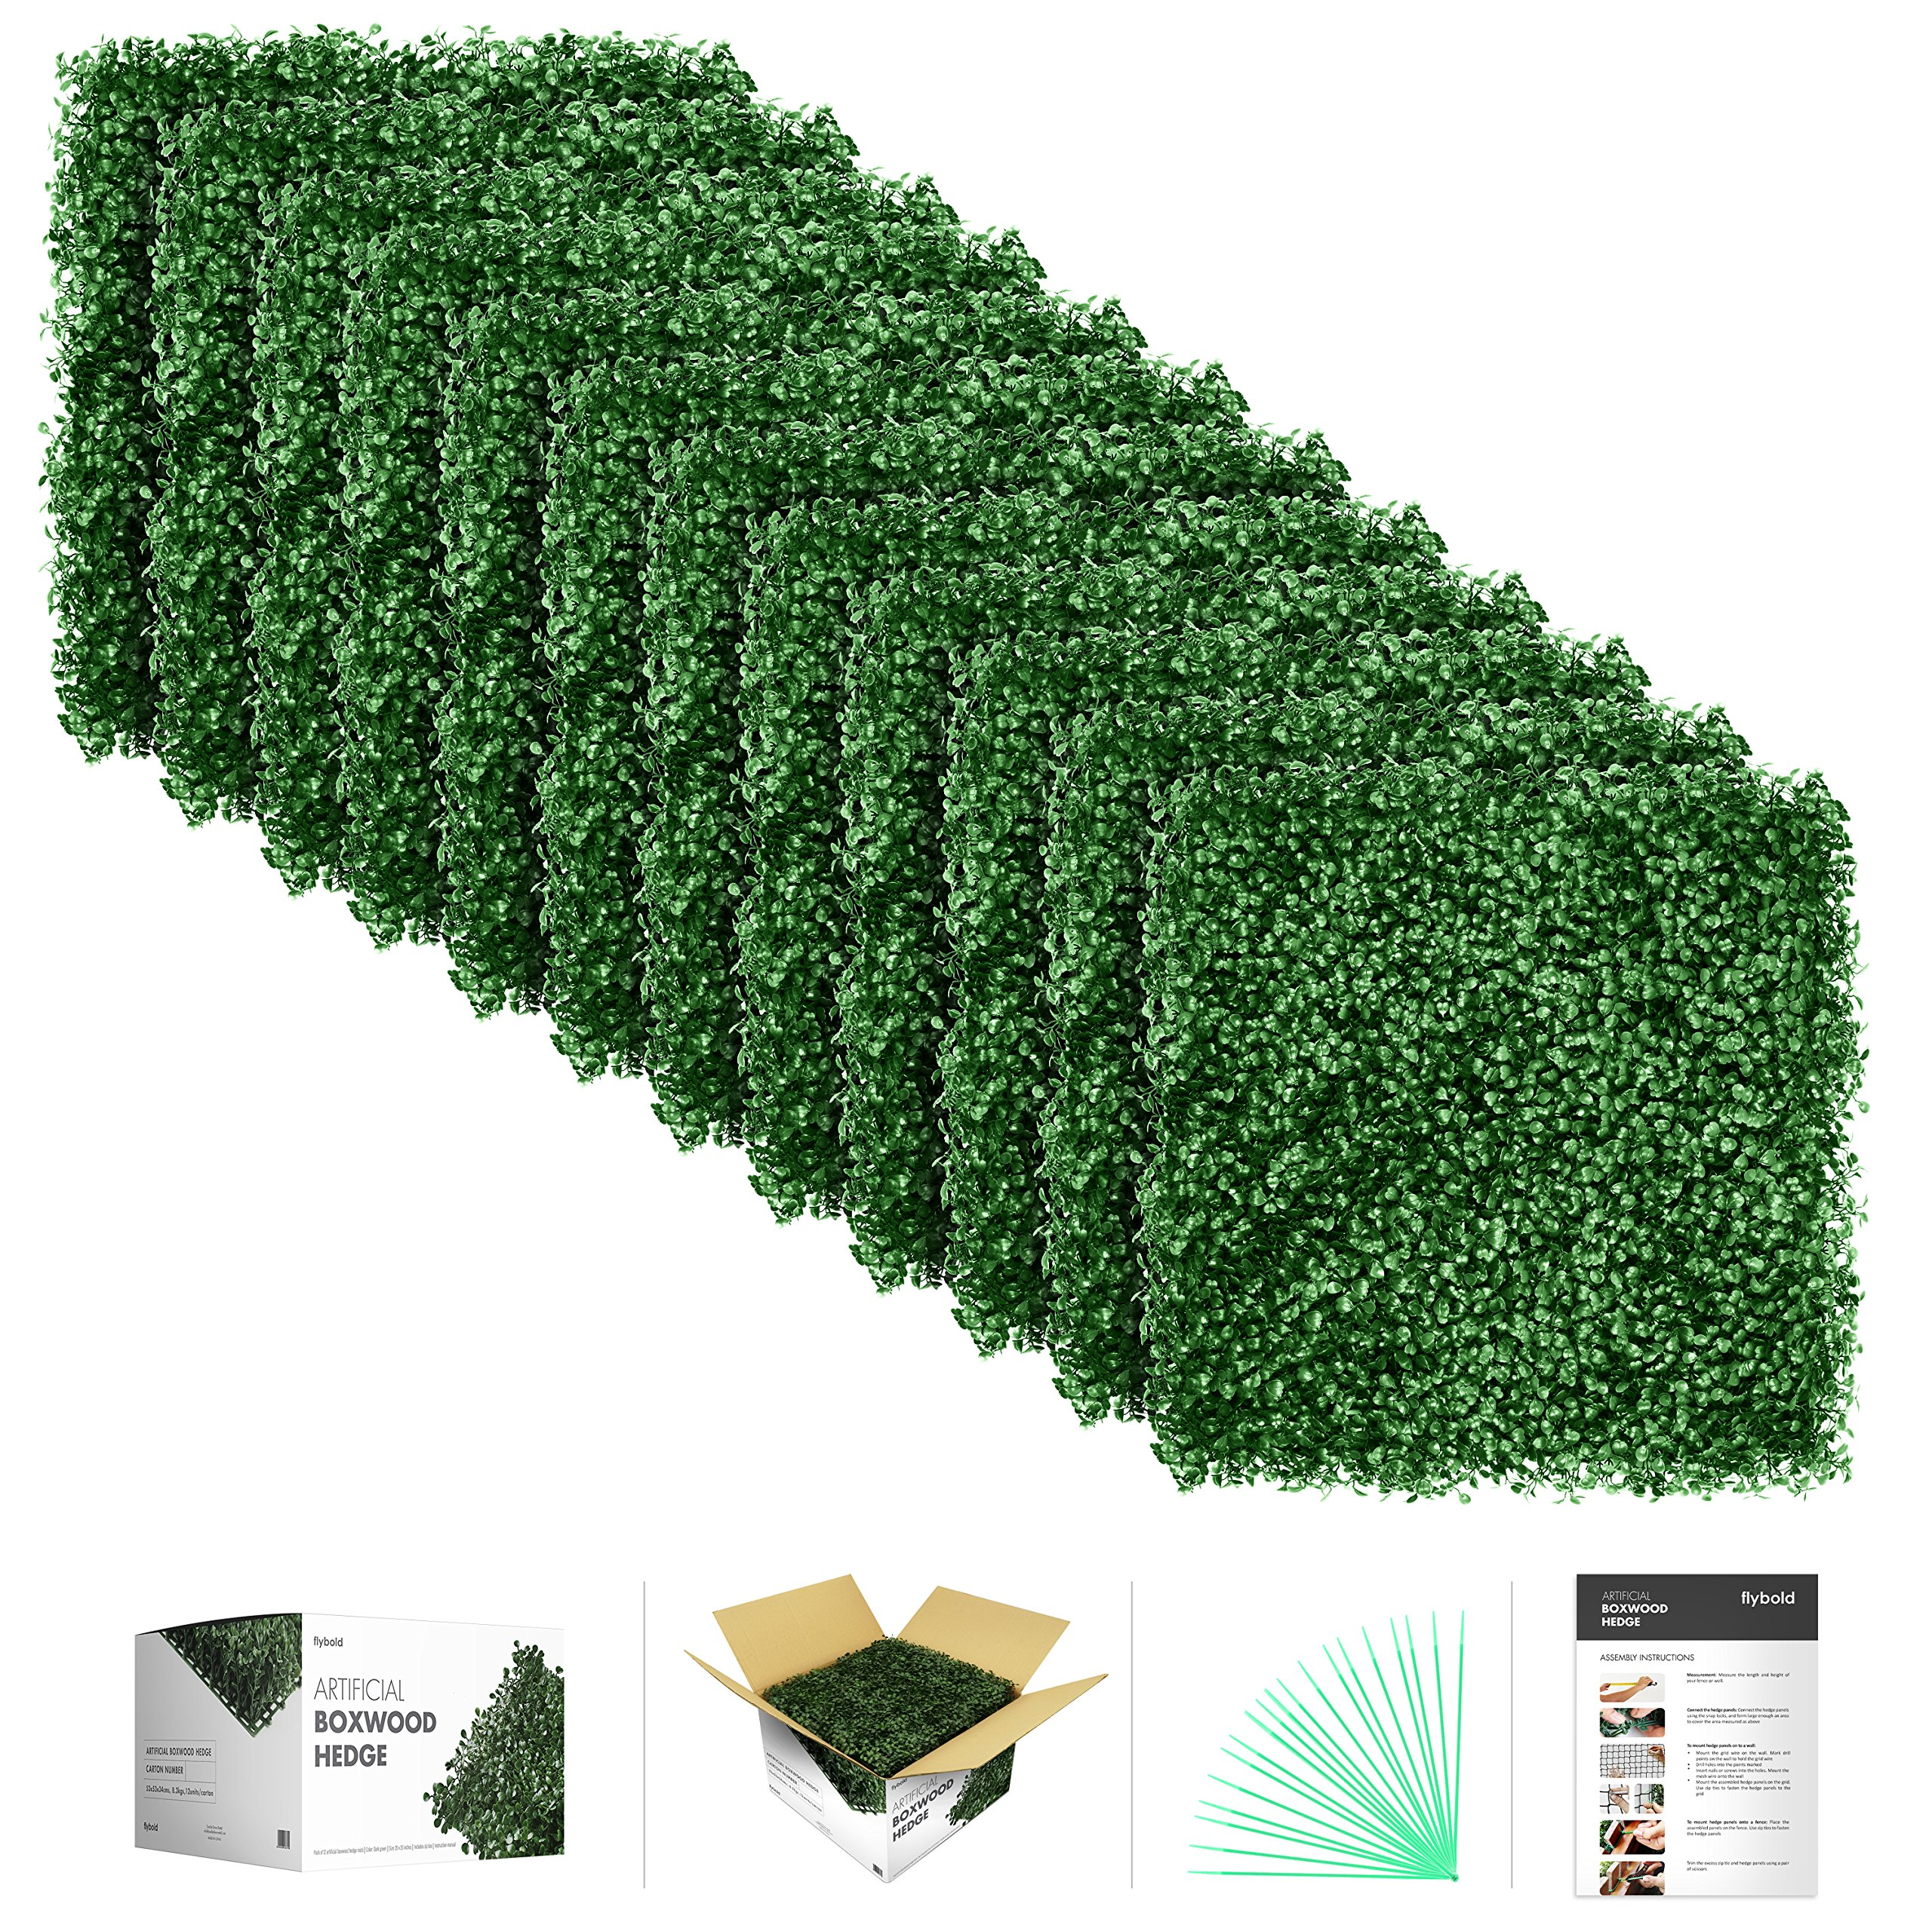 flybold Artificial Boxwood Topiary Hedge Plant UV Protected Privacy Screen Outdoor Indoor Use Garden Fence Backyard Home Decor Greenery Walls Pack of 12 pieces 20'' x 20'' inch Dark Green